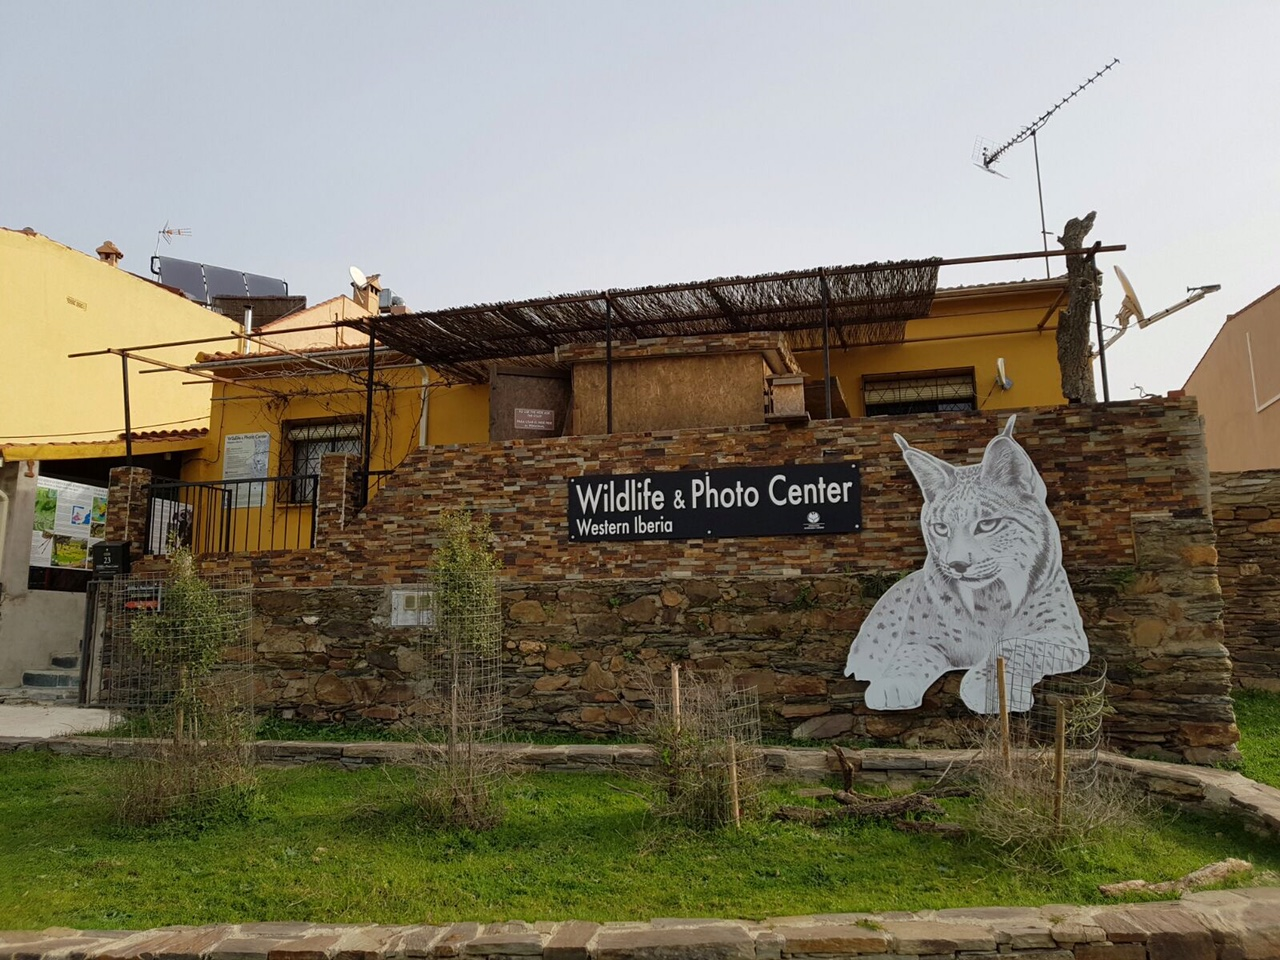 Wildlife & Photo Center en Villarreal de San Carlos, Parque Nacional Monfragüe